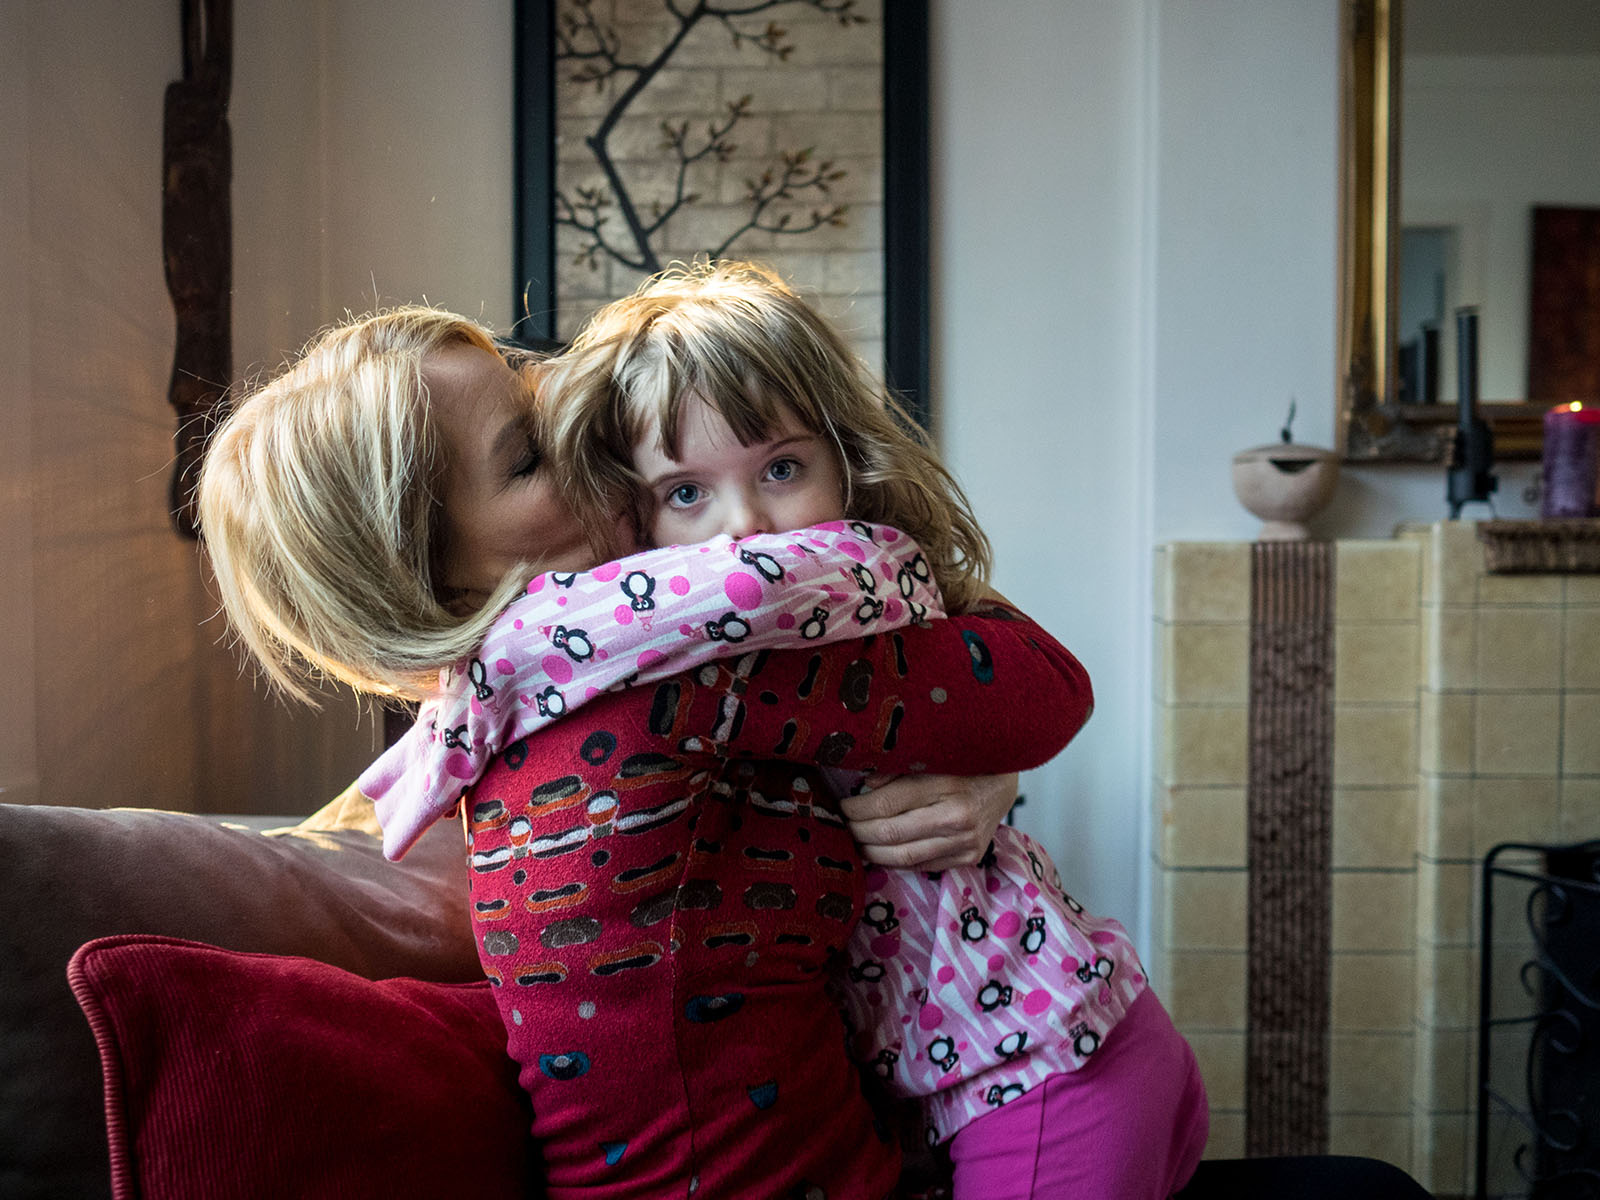 Dr. Inga Dóra Sigfúsdóttir with her five year old daughter from the book   An Equal Difference